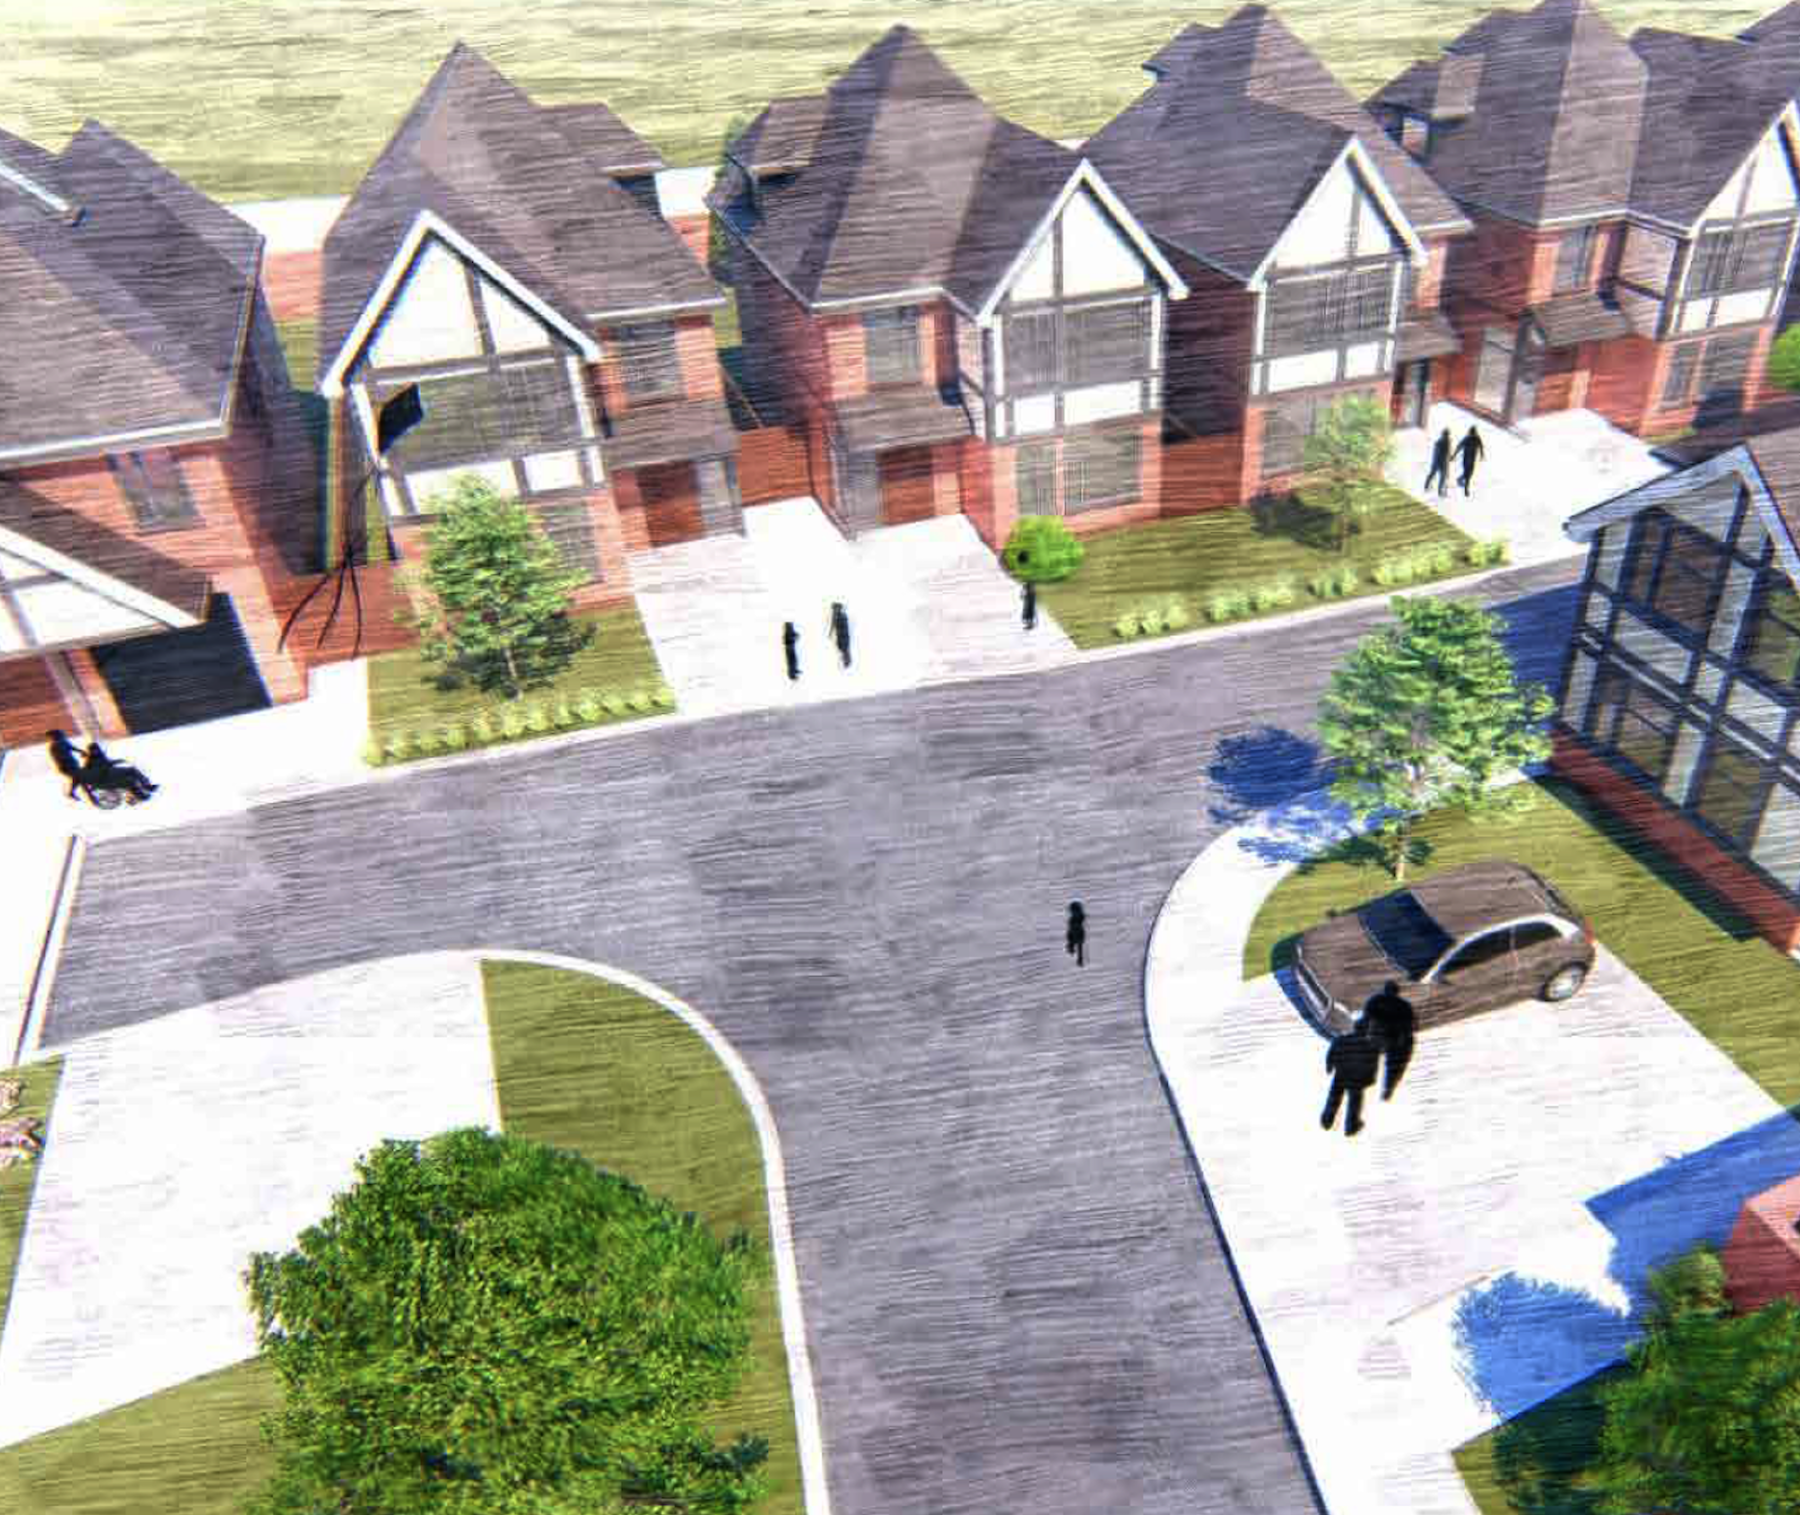 6 family homes, Ruden Way, Epsom Downs